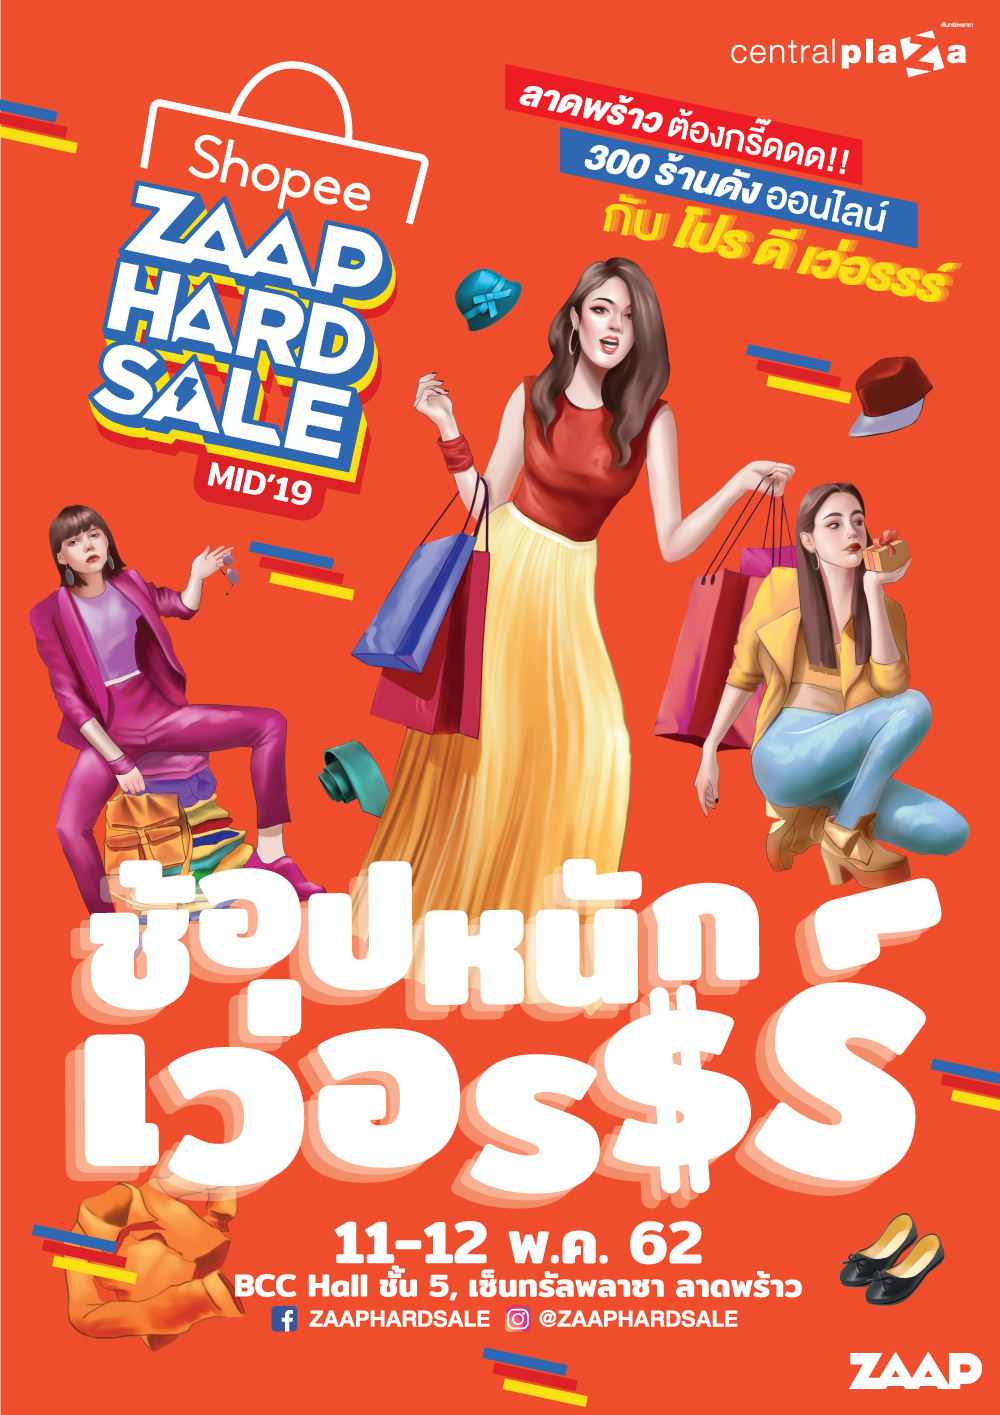 zaap-hard-sale-shopee